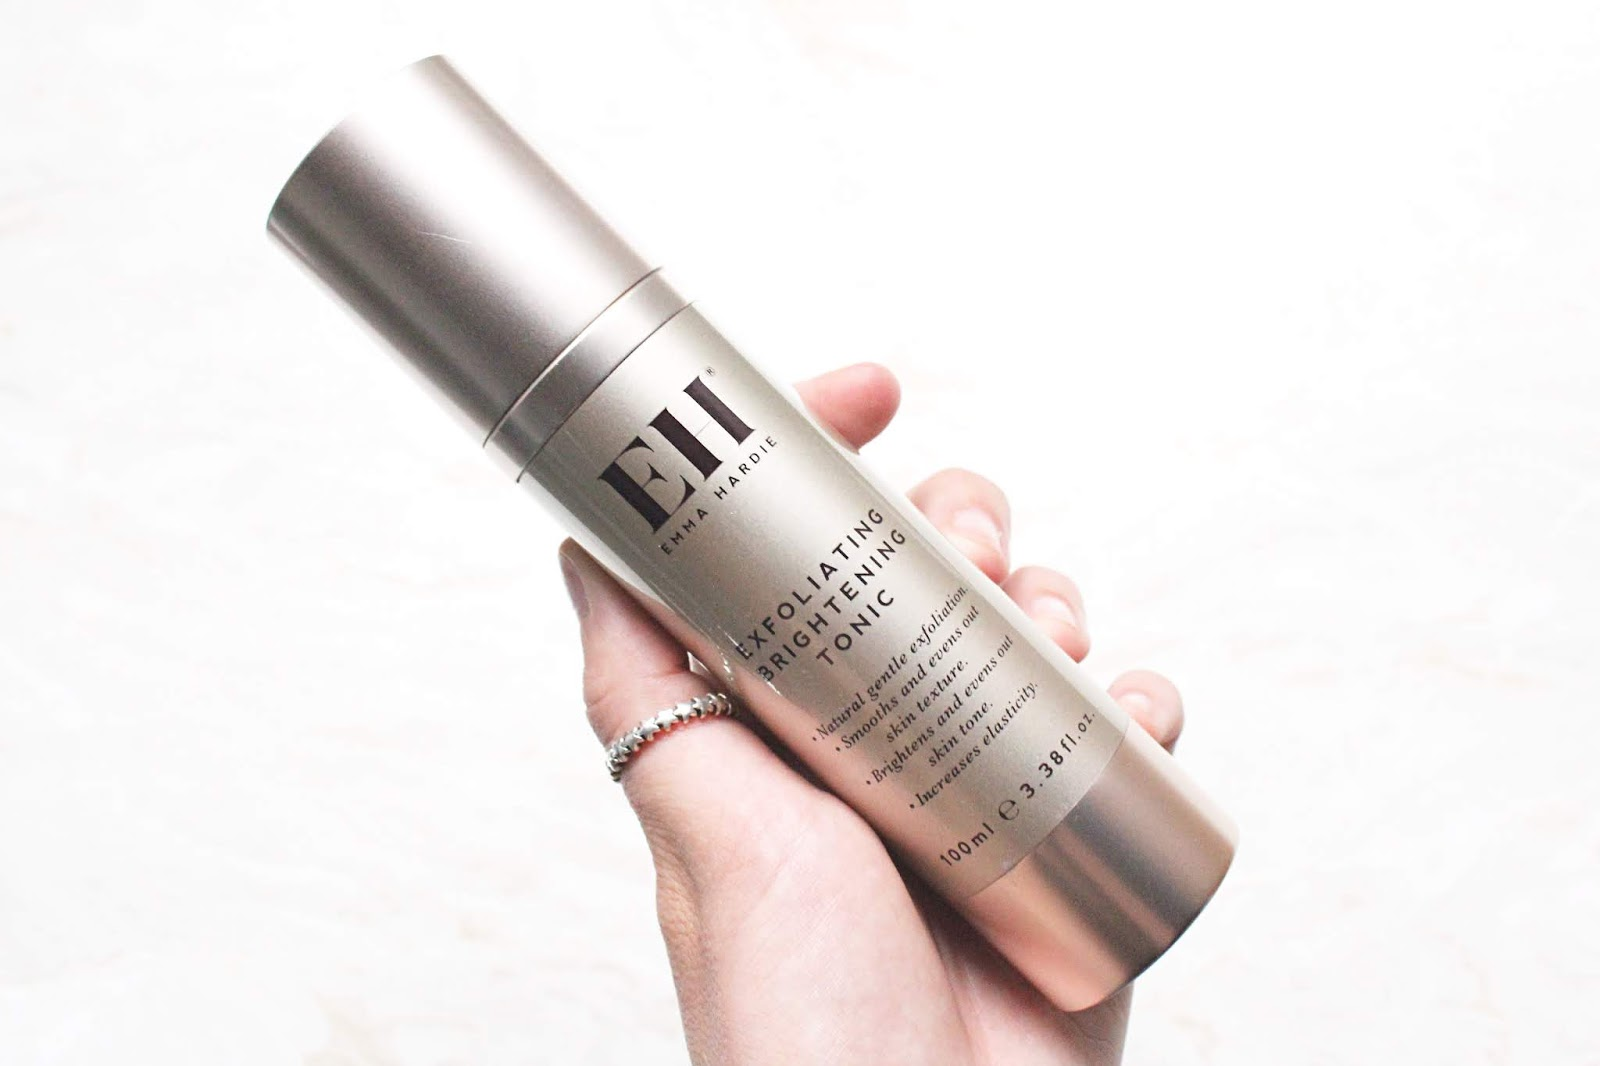 Emma Hardie Exfoliating Brightening Tonic Review